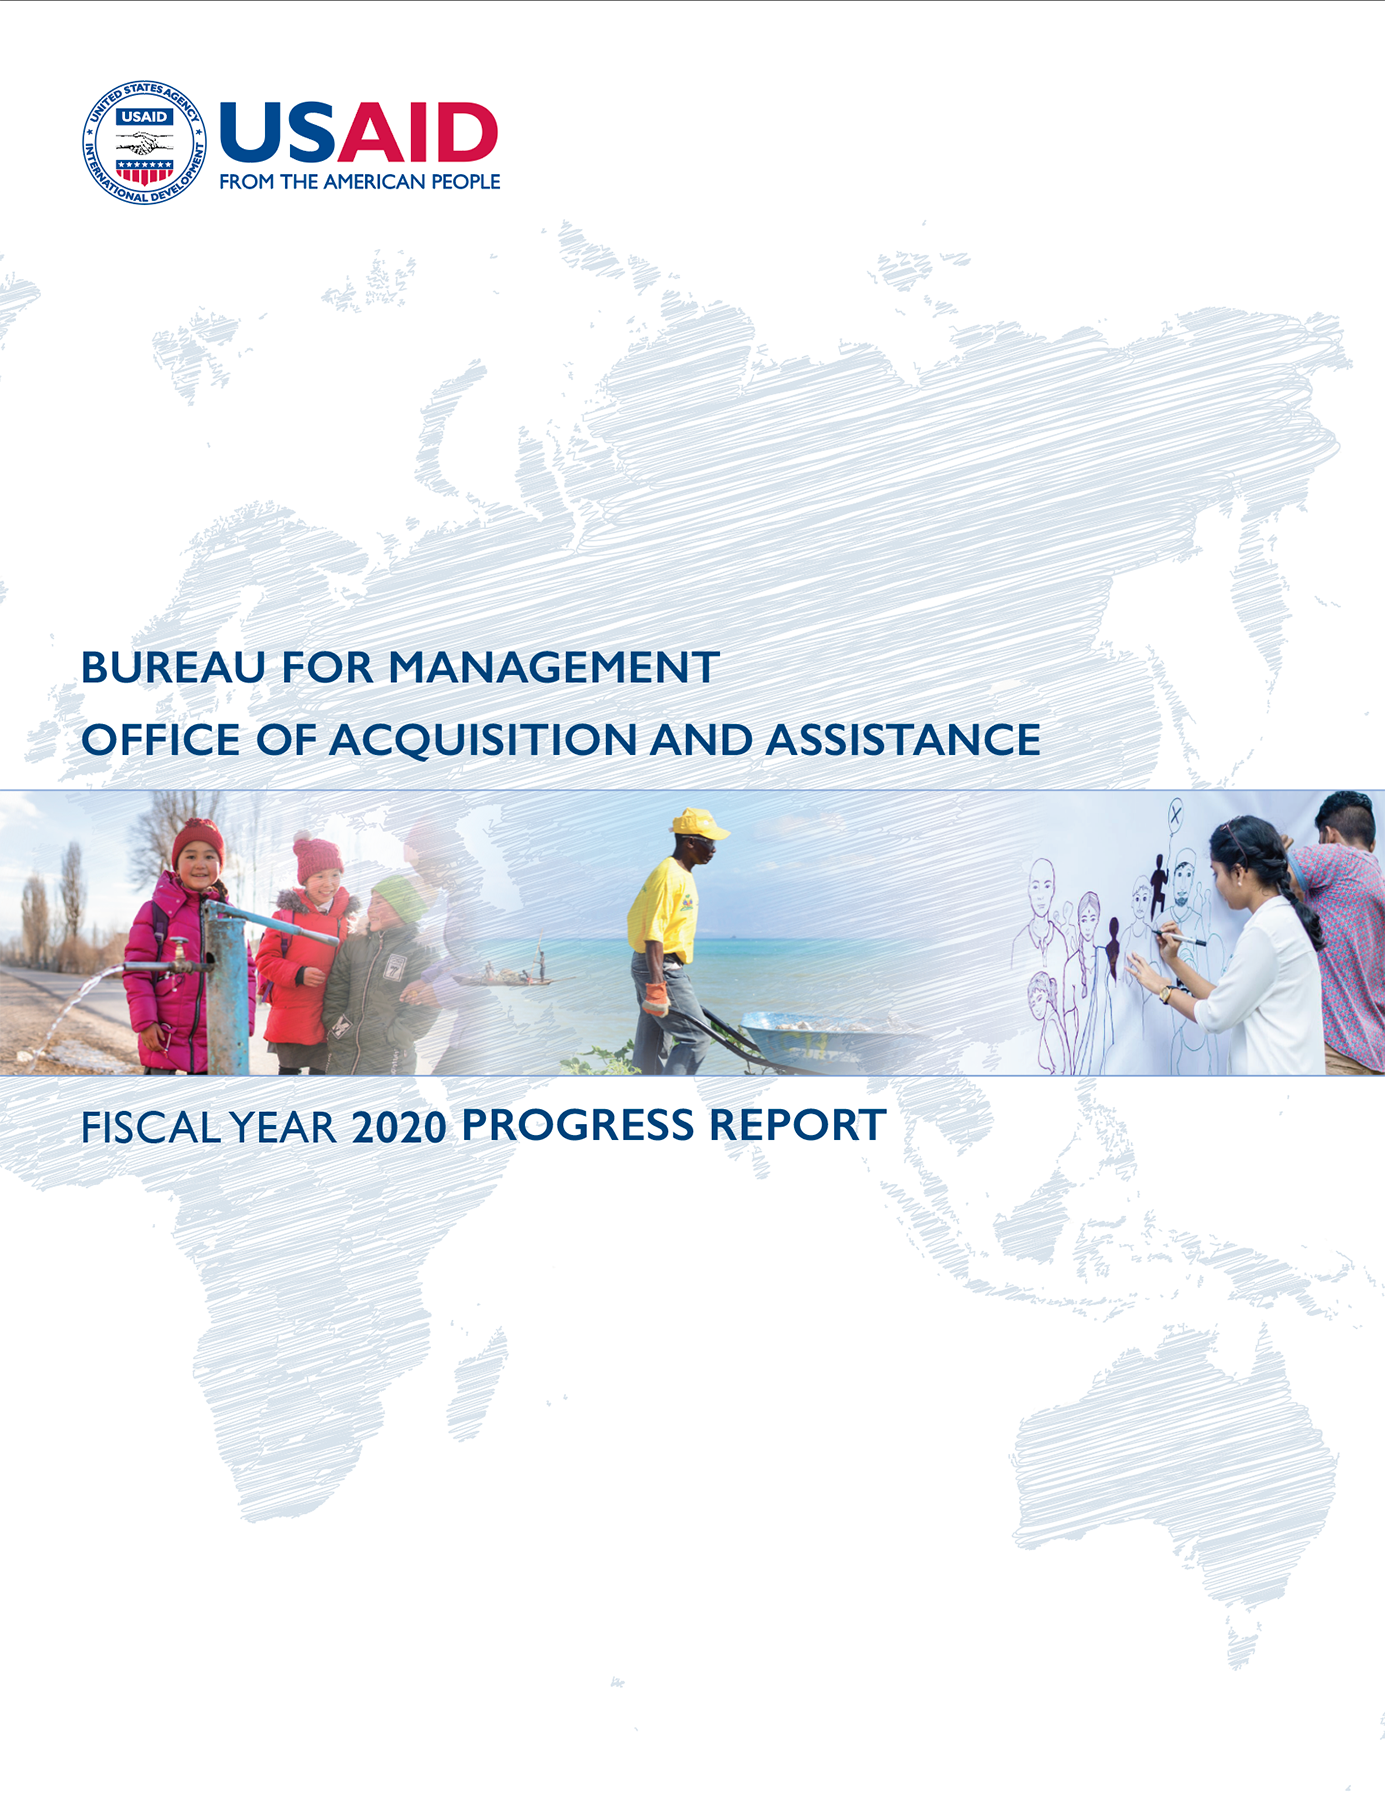 Bureau for Management Office of Acquisition and Assistance Fiscal Year 2020 Progress Report